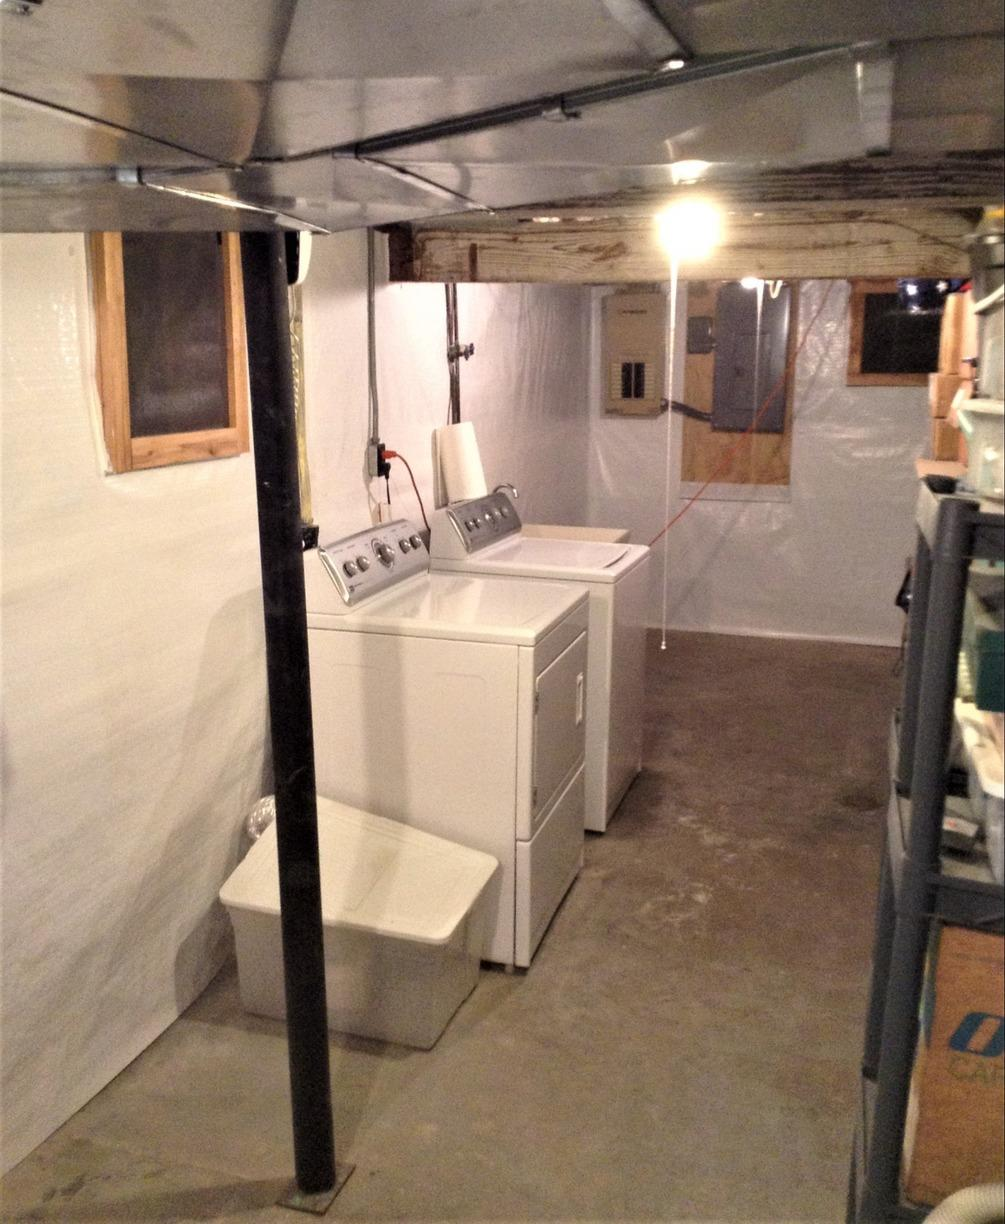 Homeowner Buys Grosse Ile, MI Home With MAJOR Water & Foundation Issues - After Photo